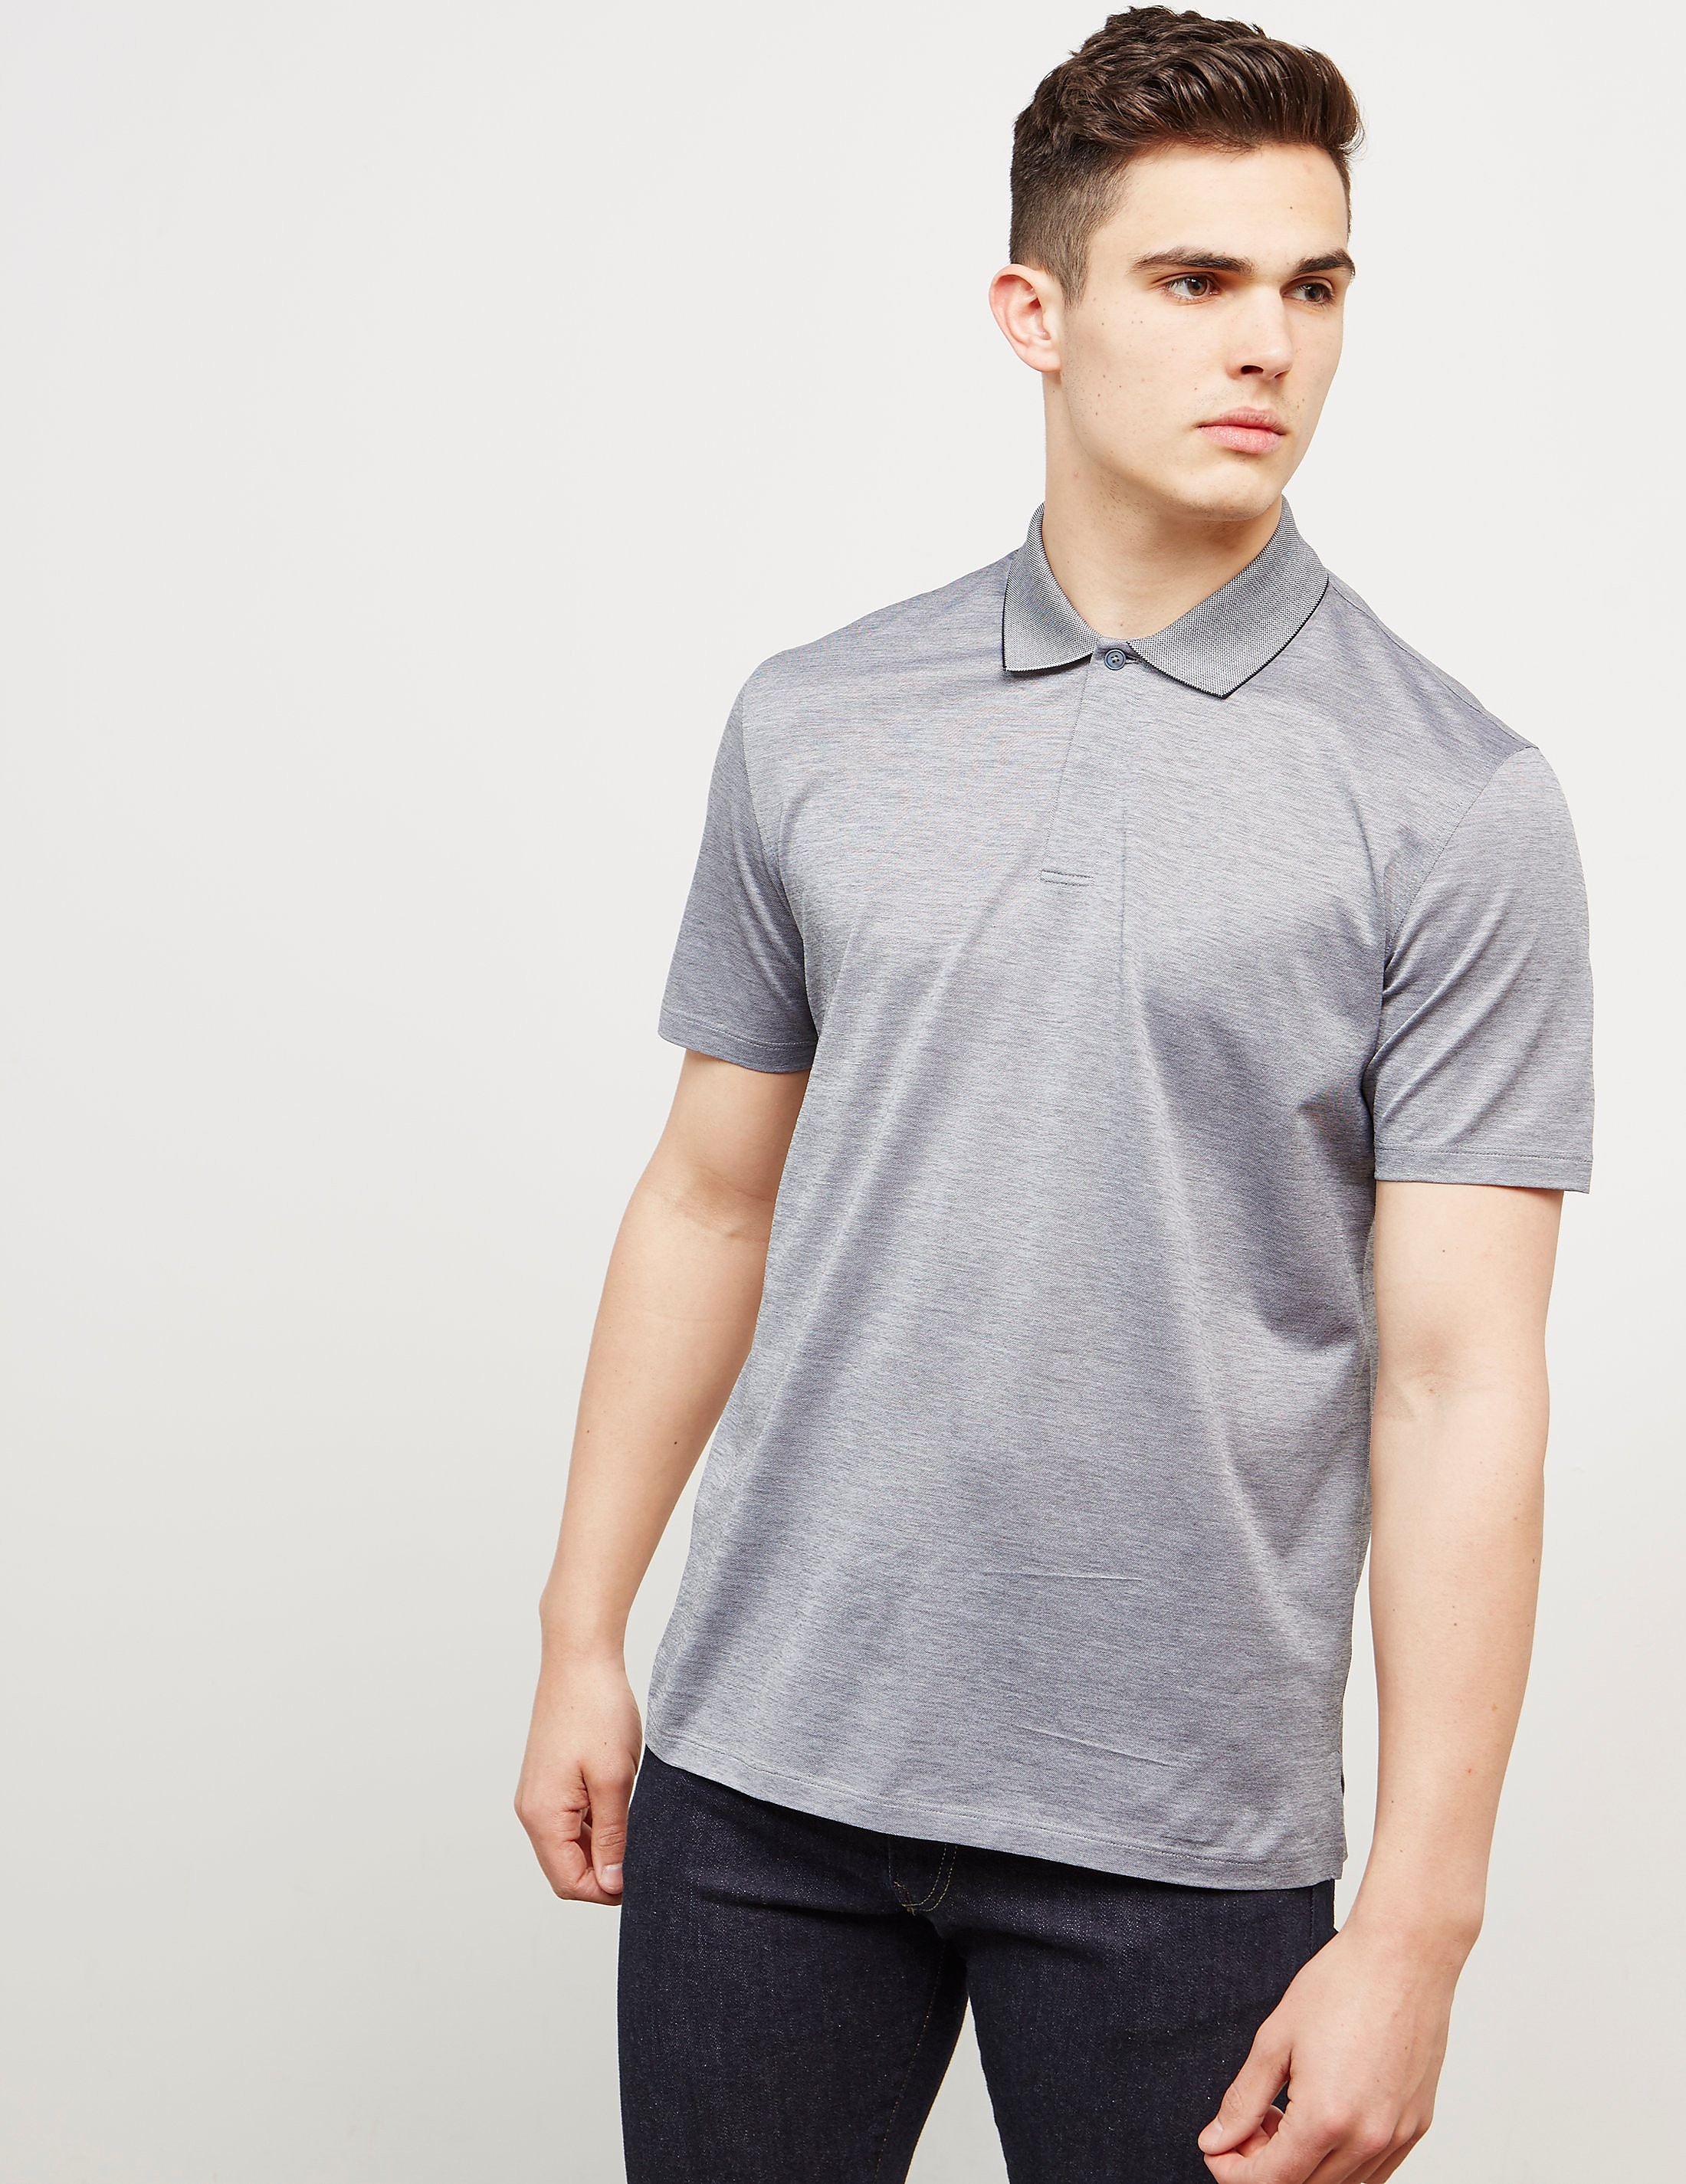 Z Zegna Slub Short Sleeve Polo Shirt - Online Exclusive